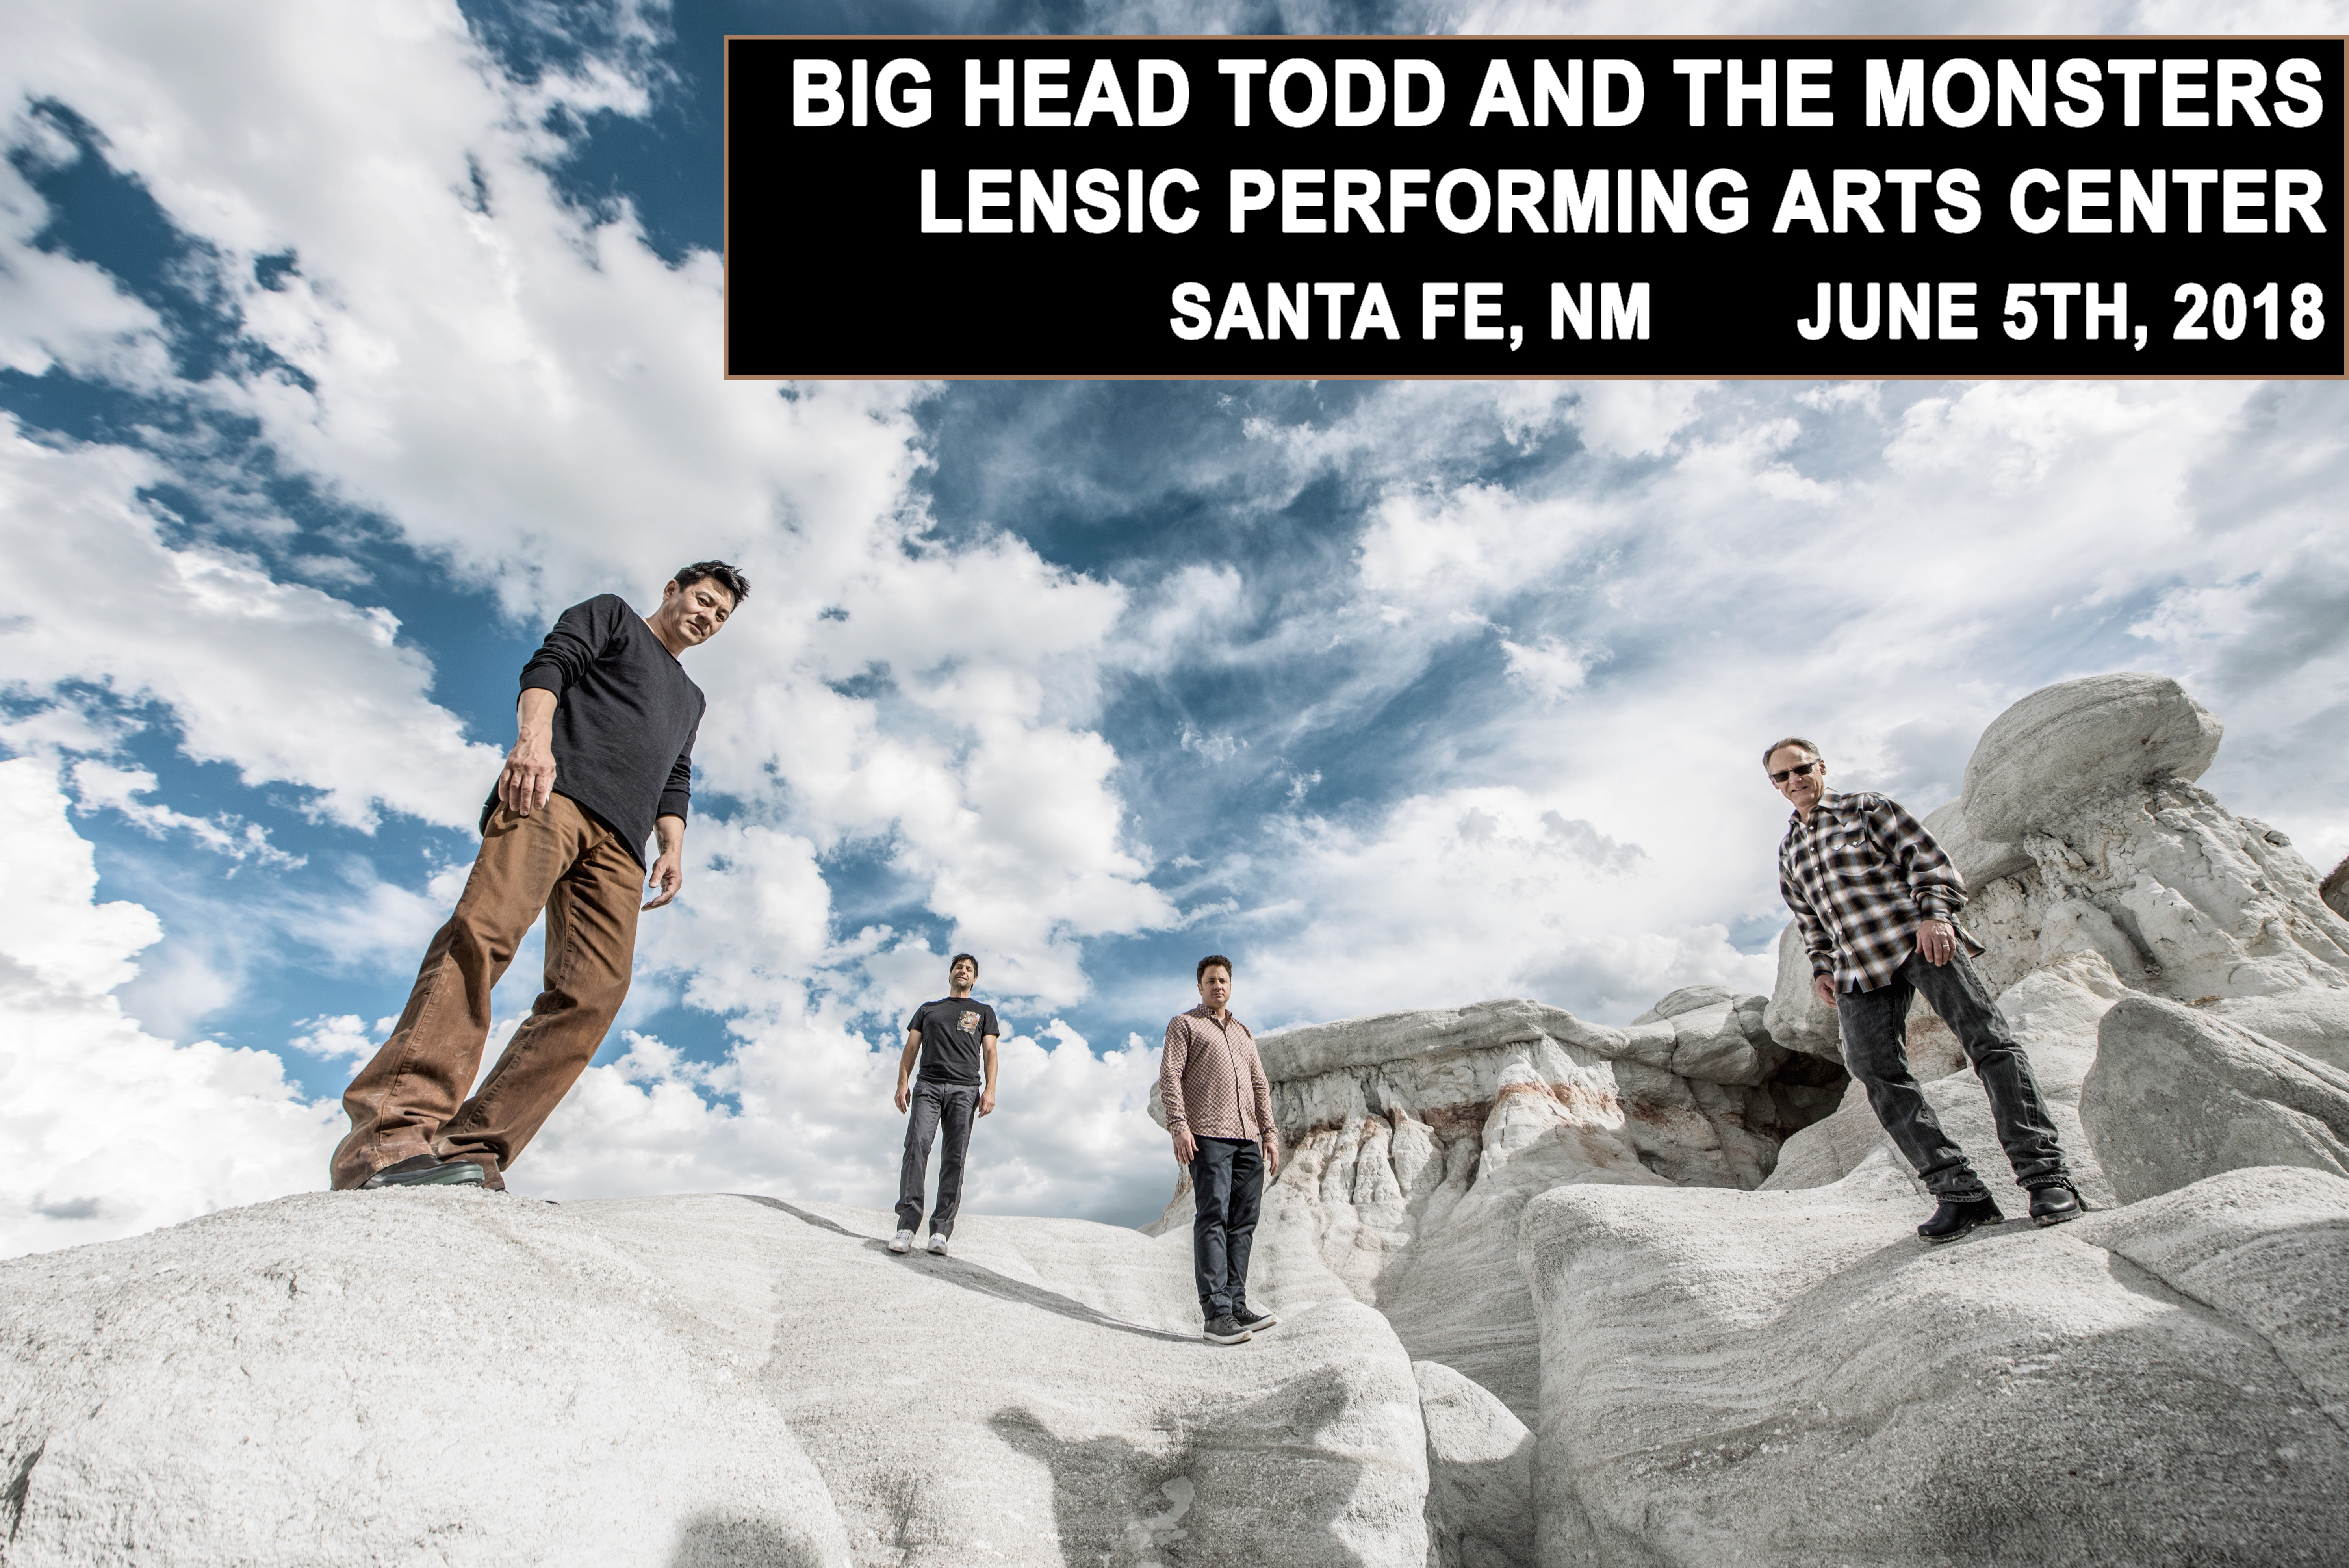 Big Head Todd headlining Lensic Performing Arts Center on June 5th in Santa Fe - Tickets on sale NOW!